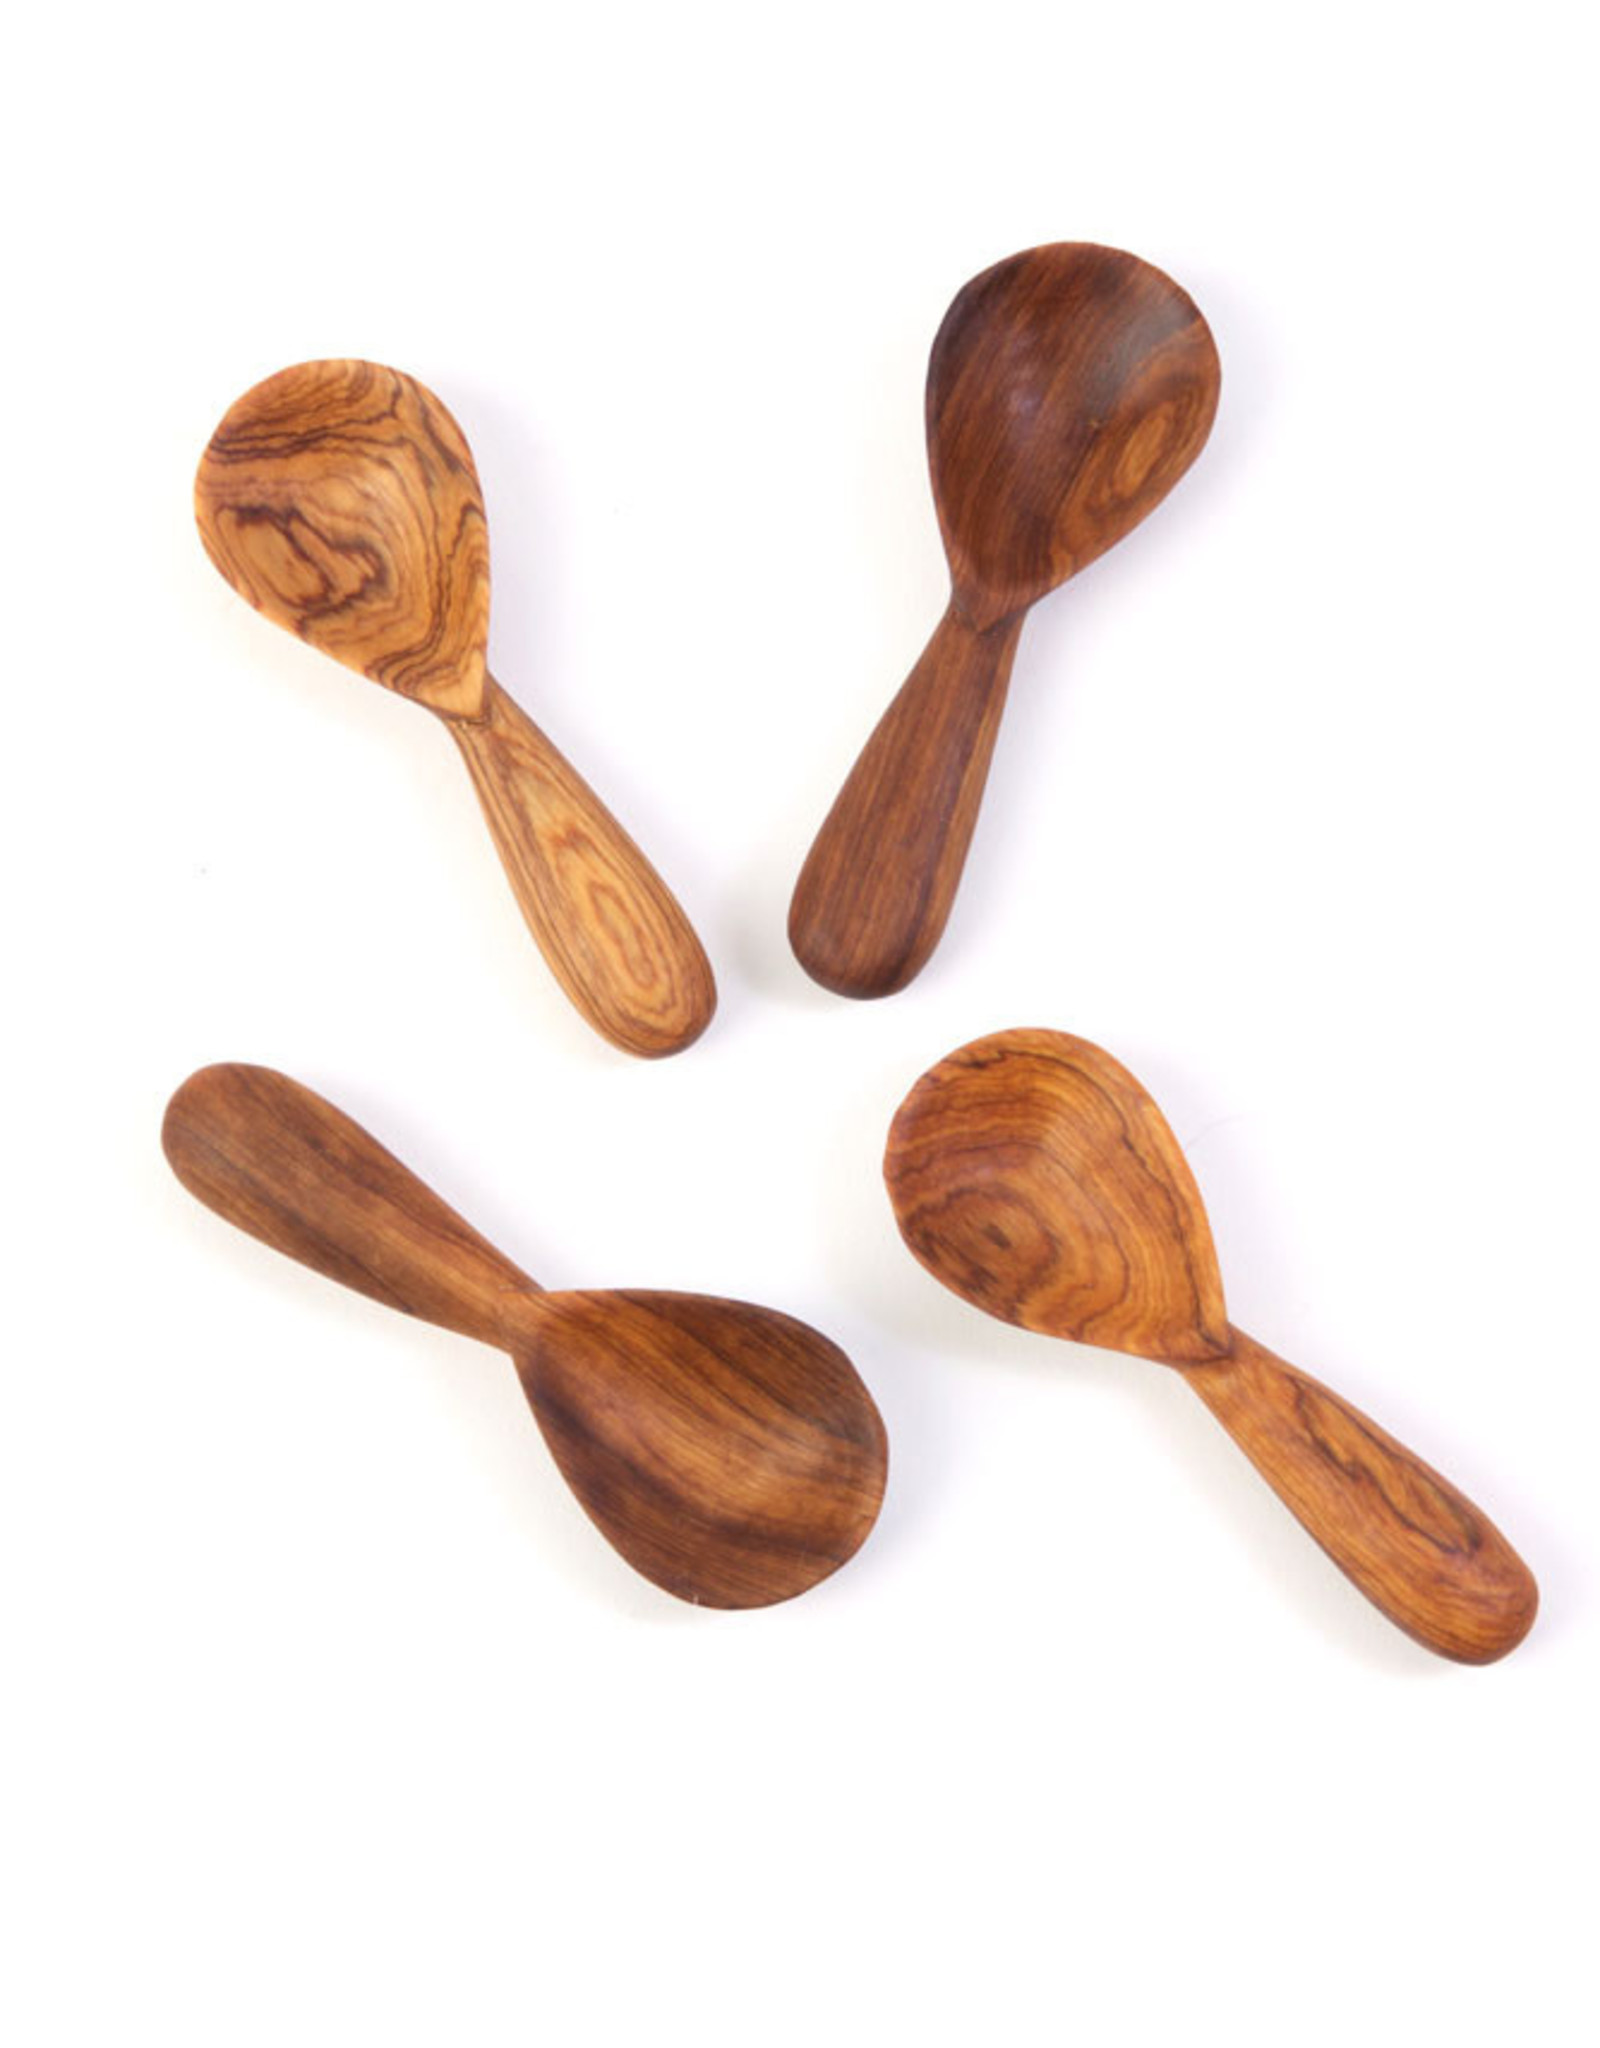 Wild Olive Spice Spoon (sold individually)